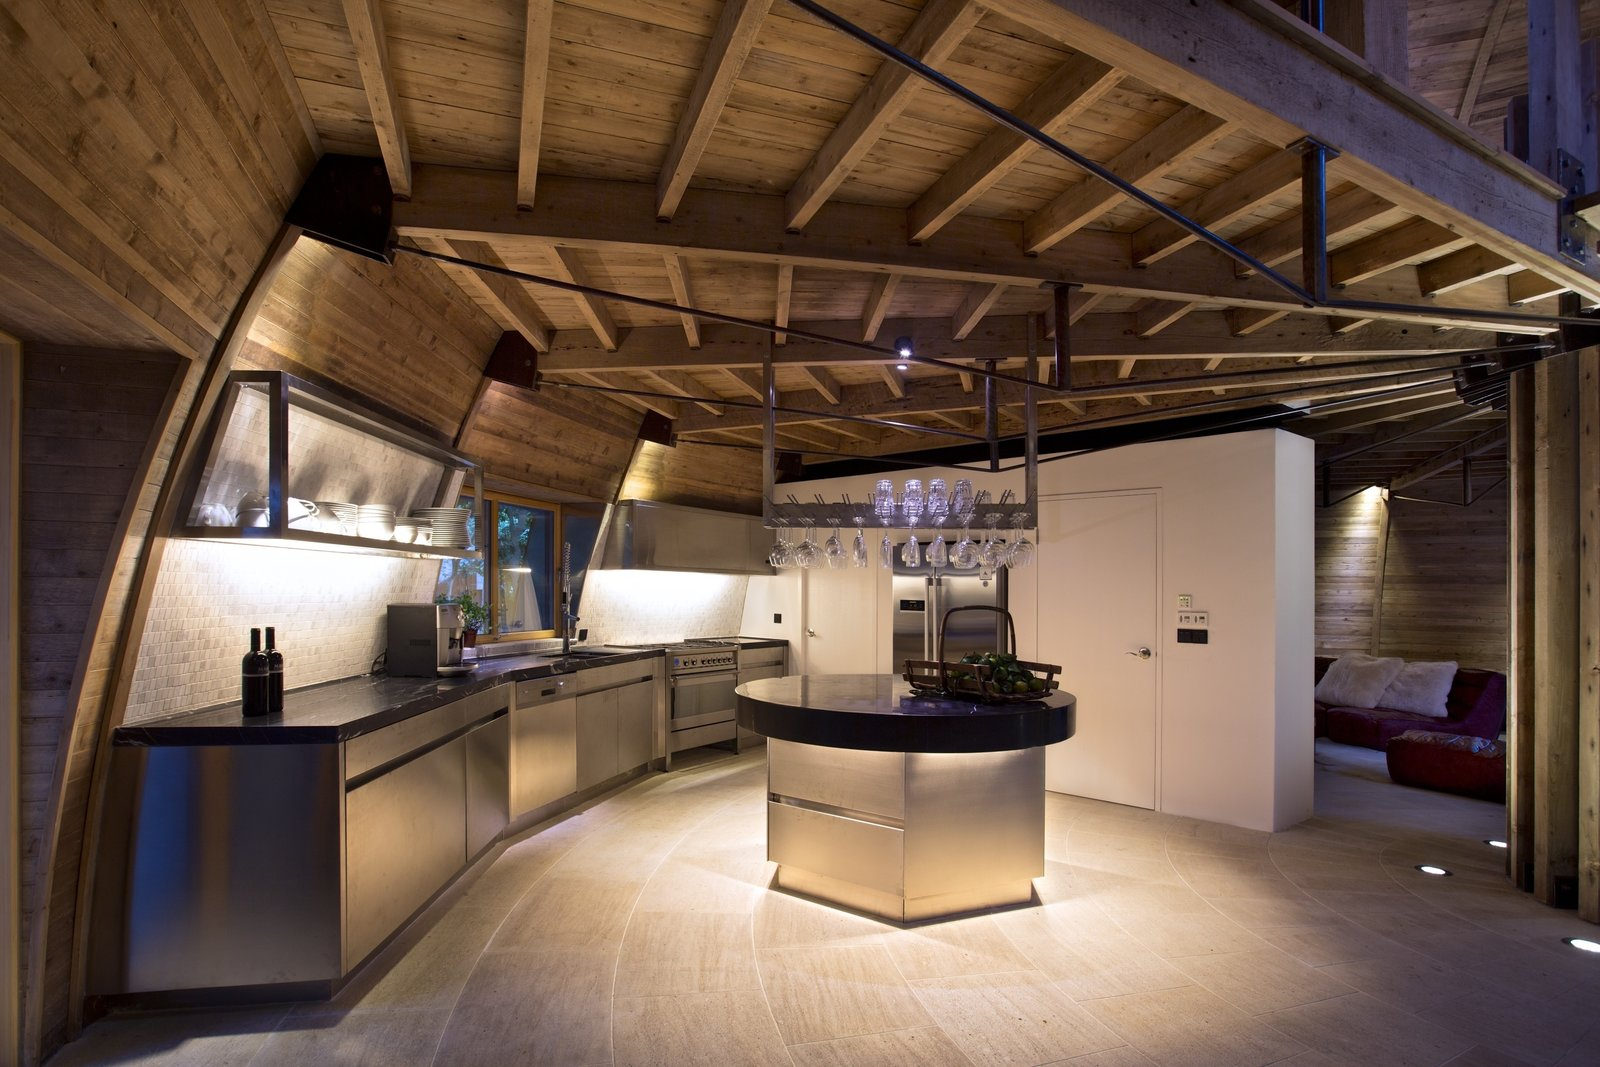 A full-service kitchen is nestled under the dome's loft. Clad in stainless steel, its custom-made cabinets match the appliances and the wine glass holder that hangs over the island. The kitchen's black marble countertops echo the surface of the dining table.